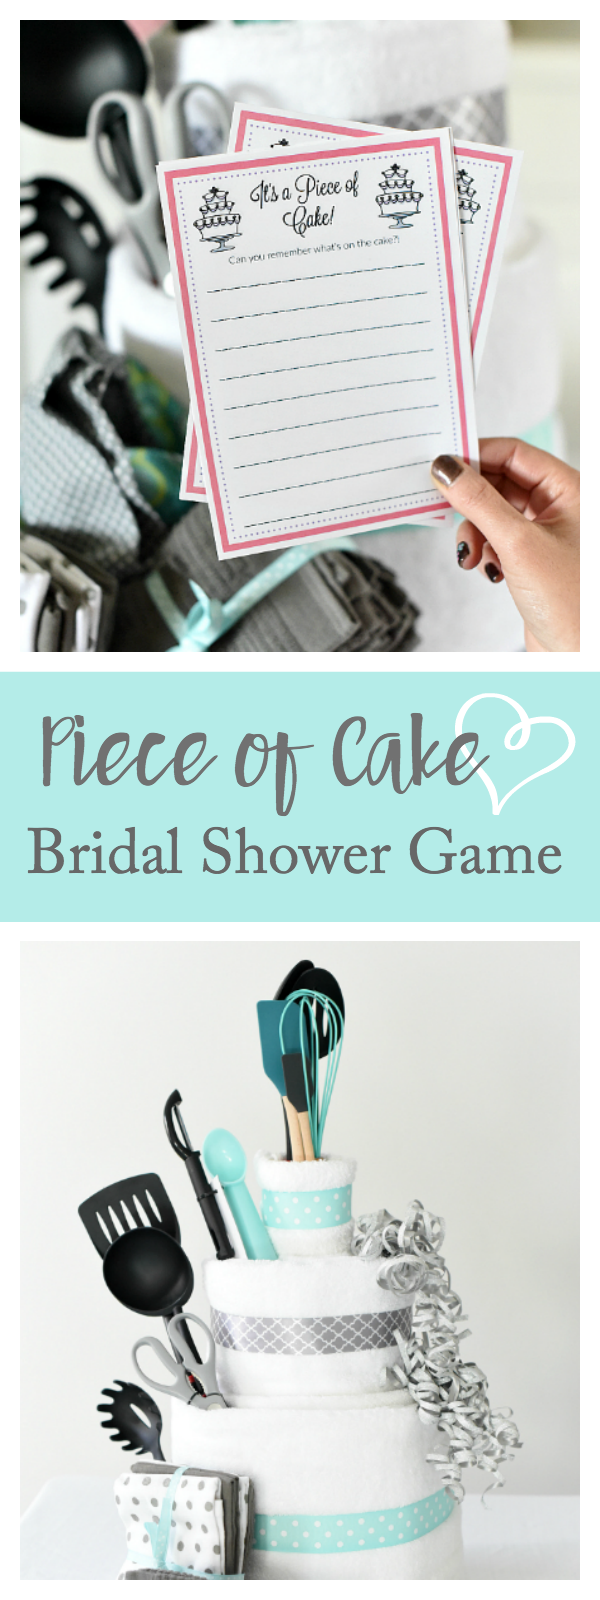 fun bridal shower game idea piece of cake memory game